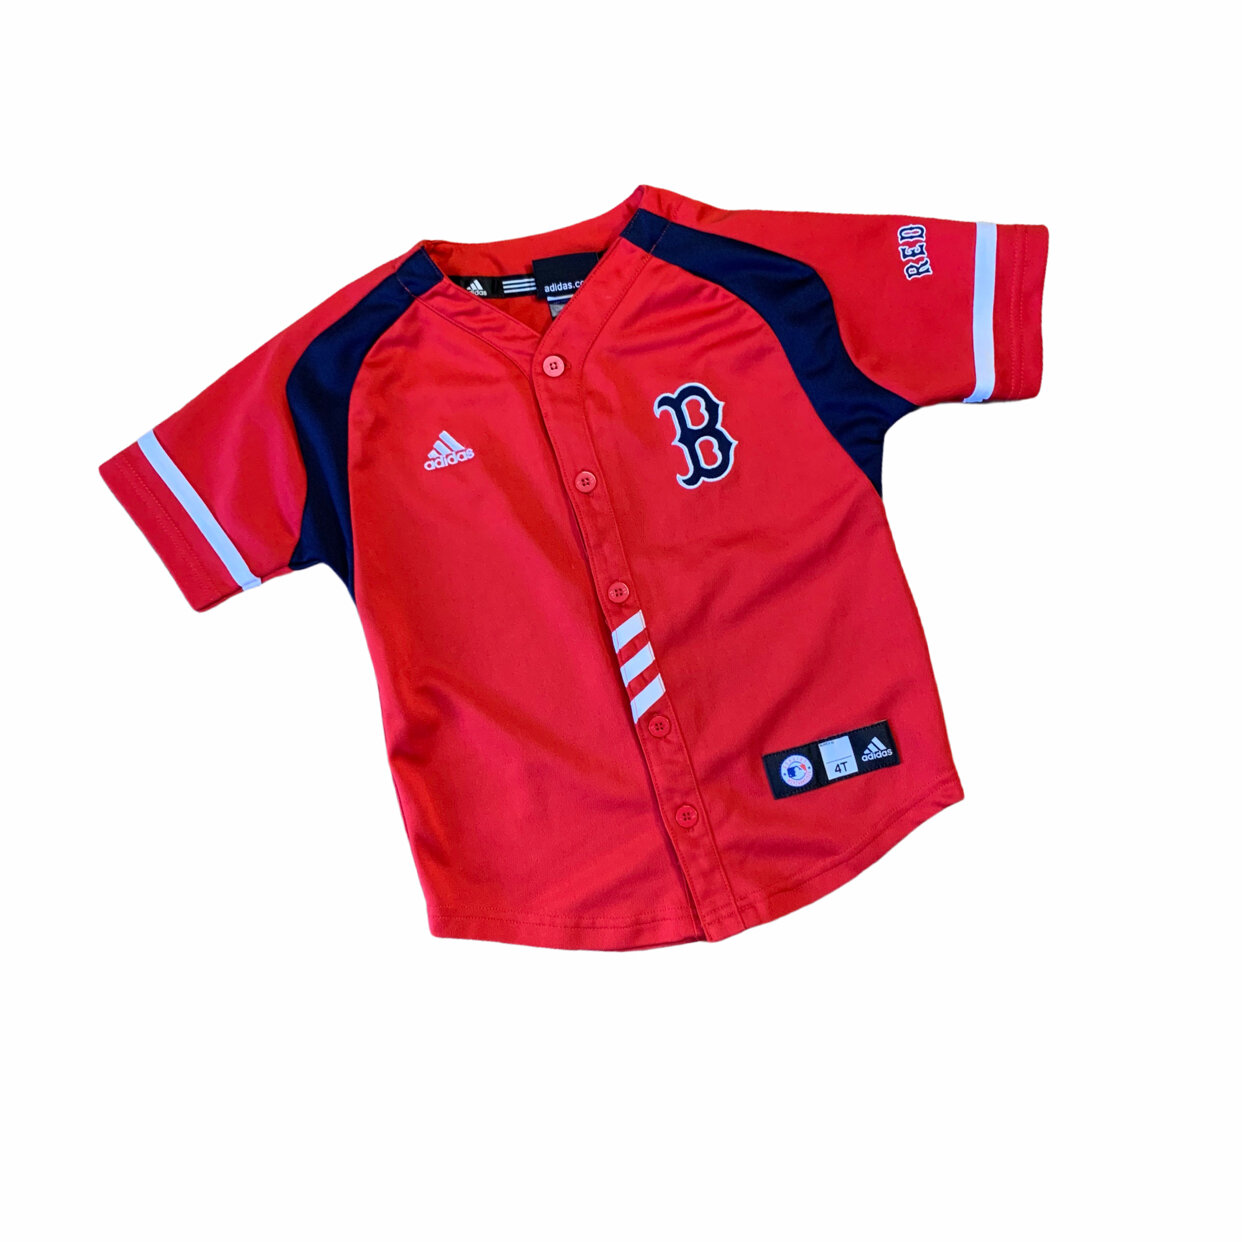 Adidas Boston Red Sox Jersey ⚾️ 4T